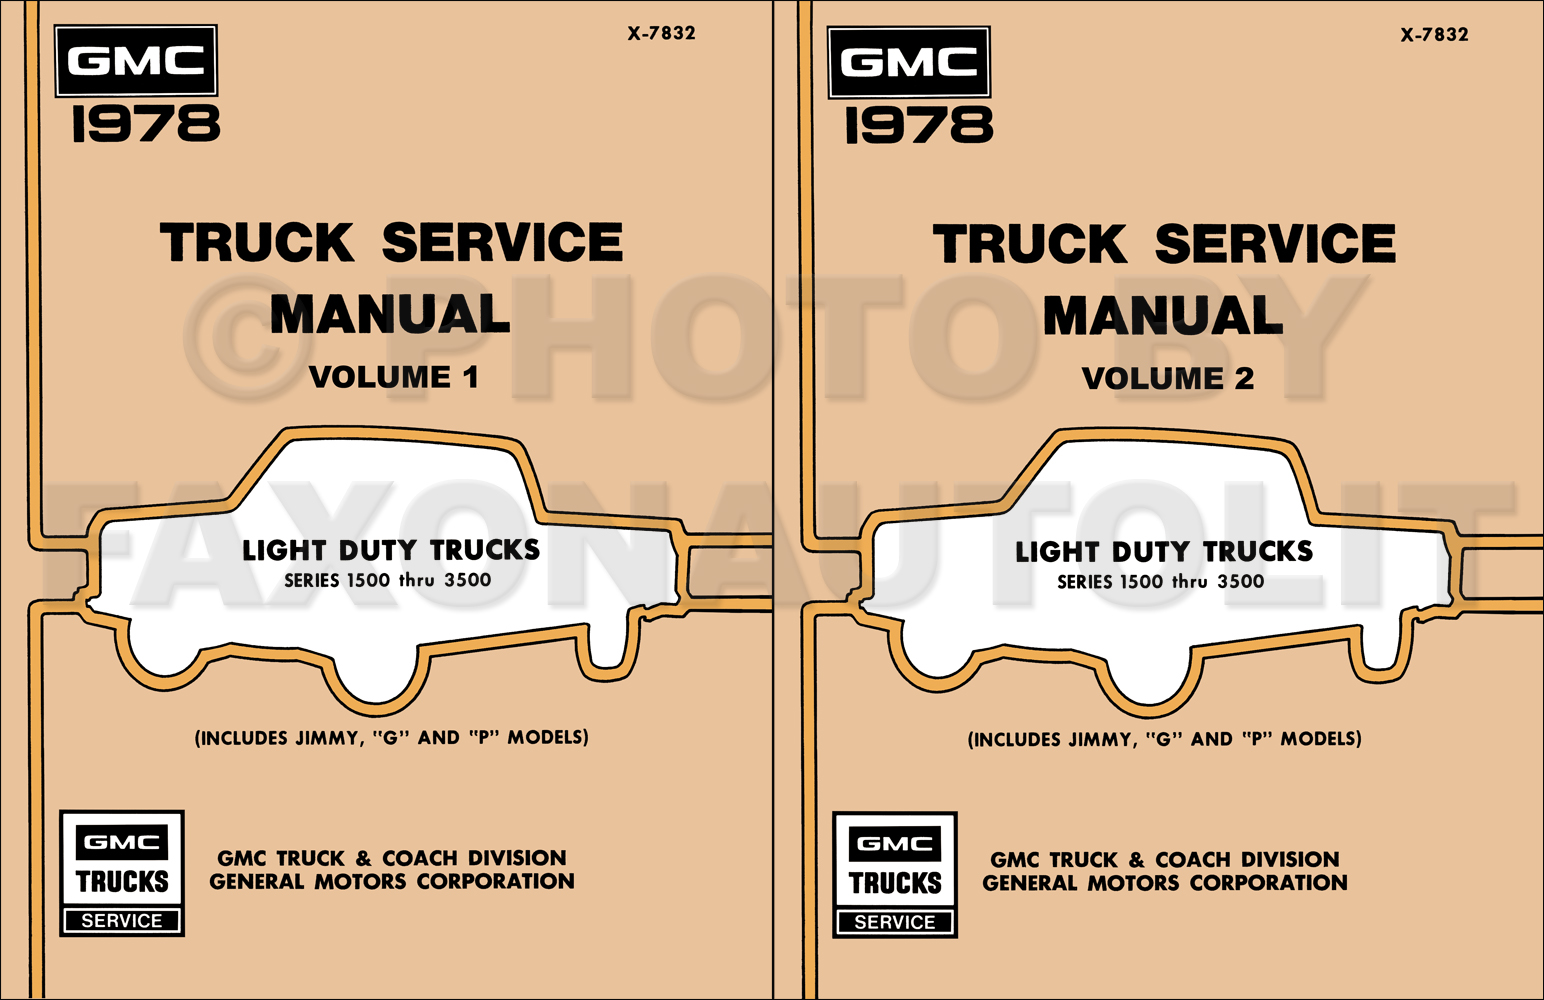 1982 chevrolet c10 wiring diagram 1999 ford f350 stereo 1985 g30 chassis